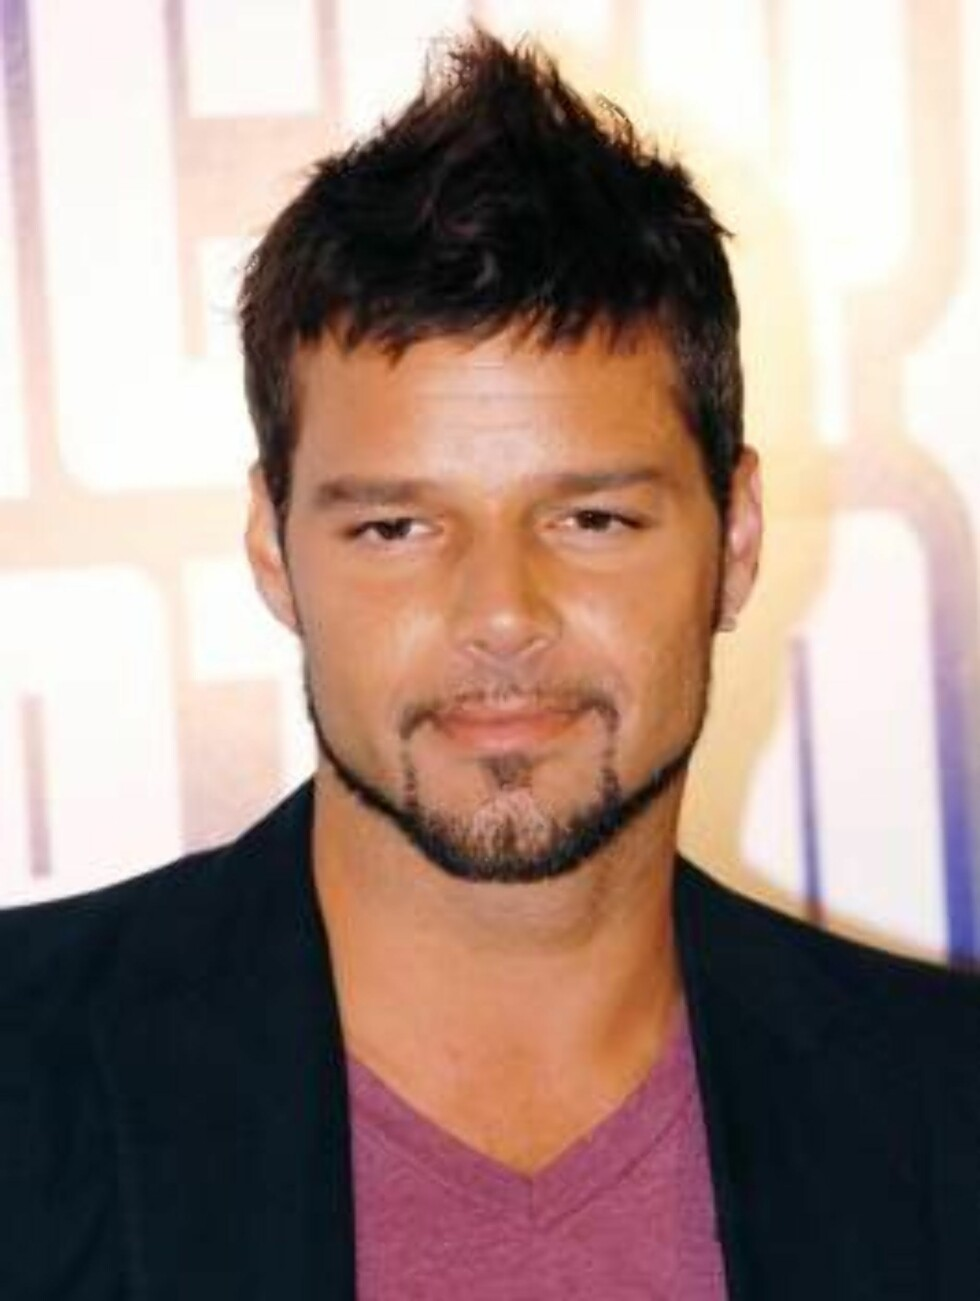 Hesperia Hotel, Madrid 19/04/06.-   Ricky Martin has choose Madrid, Spain, to present his new album, Life, and a world live tour called ?One night only?. The international singer announced concerts in Barcelona, Valencia, Murcia and Madrid since 9th to 14 Foto: Stella Pictures